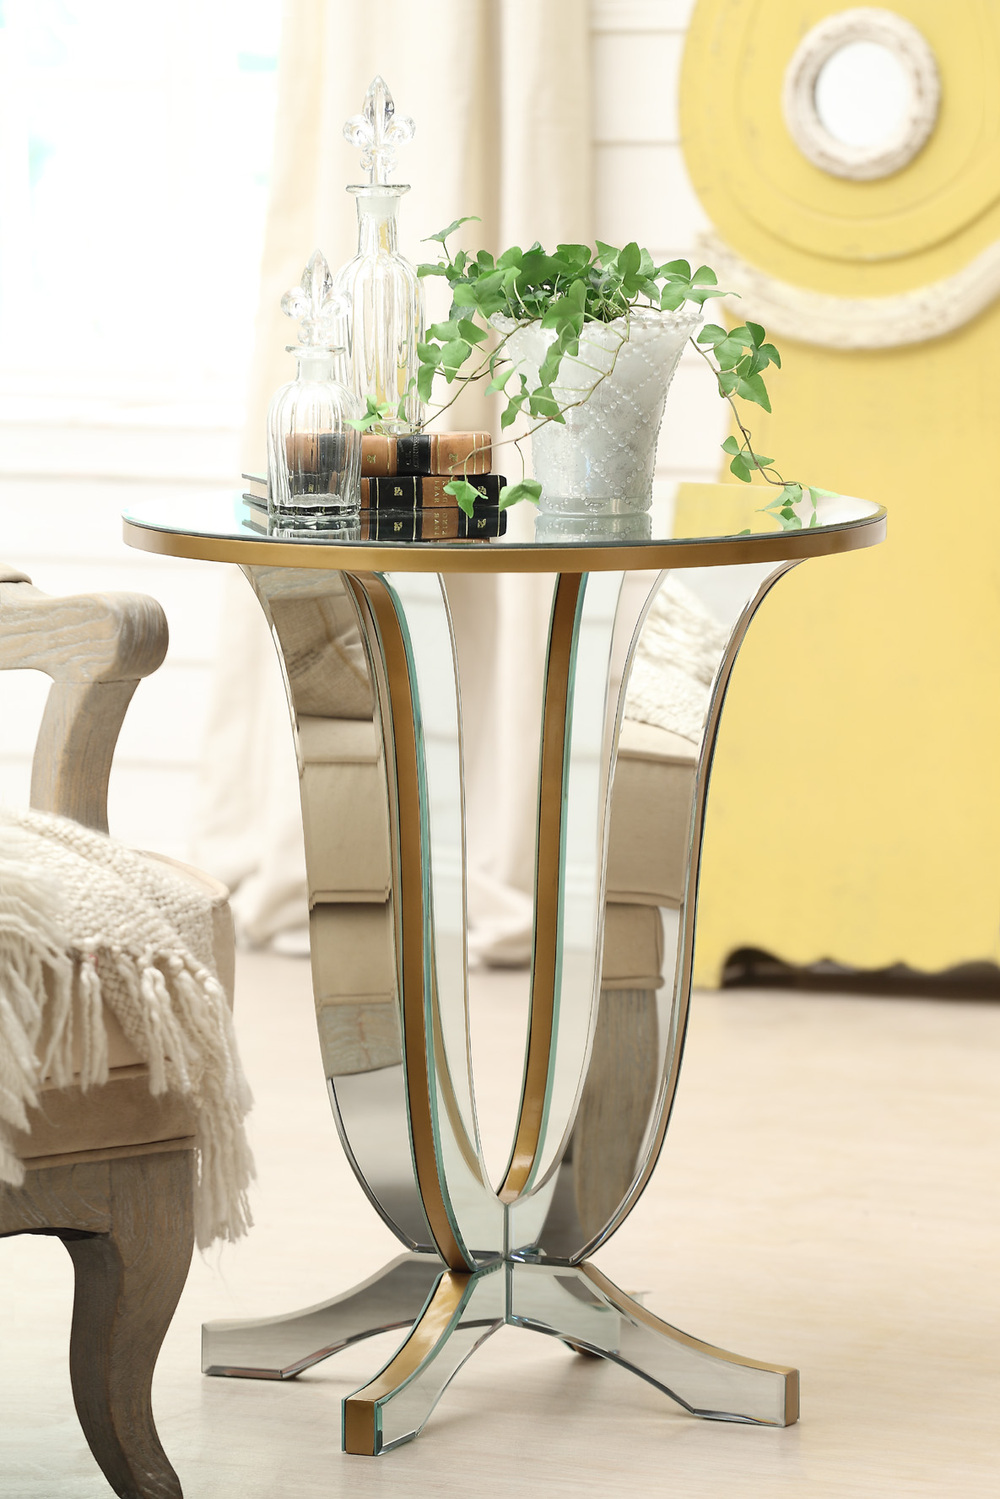 astonishing small accent tables for living room table gold furniture modern kijiji white glass antique decorative target round outdoor full size big lots deck end cream colored